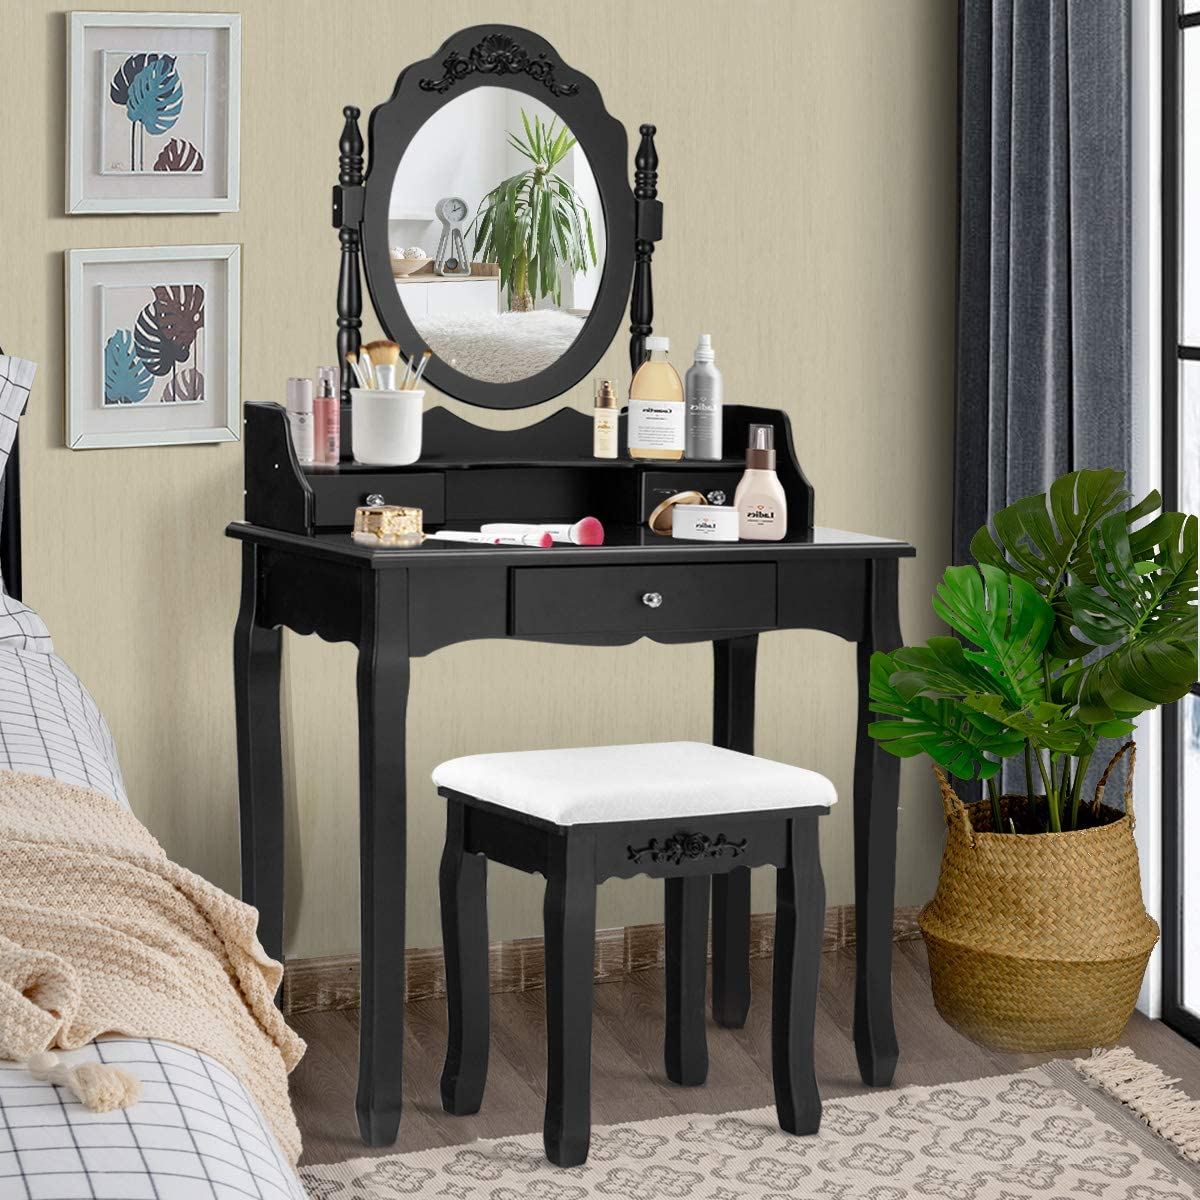 Giantex Vanity Table Set with Mirror and Stool for Bedroom Modern Wood Style Cushioned Bench Oval Mirrored Multifunctional Top Removable Writing Desk Dressing Tables for Girls, 3 Drawers Black